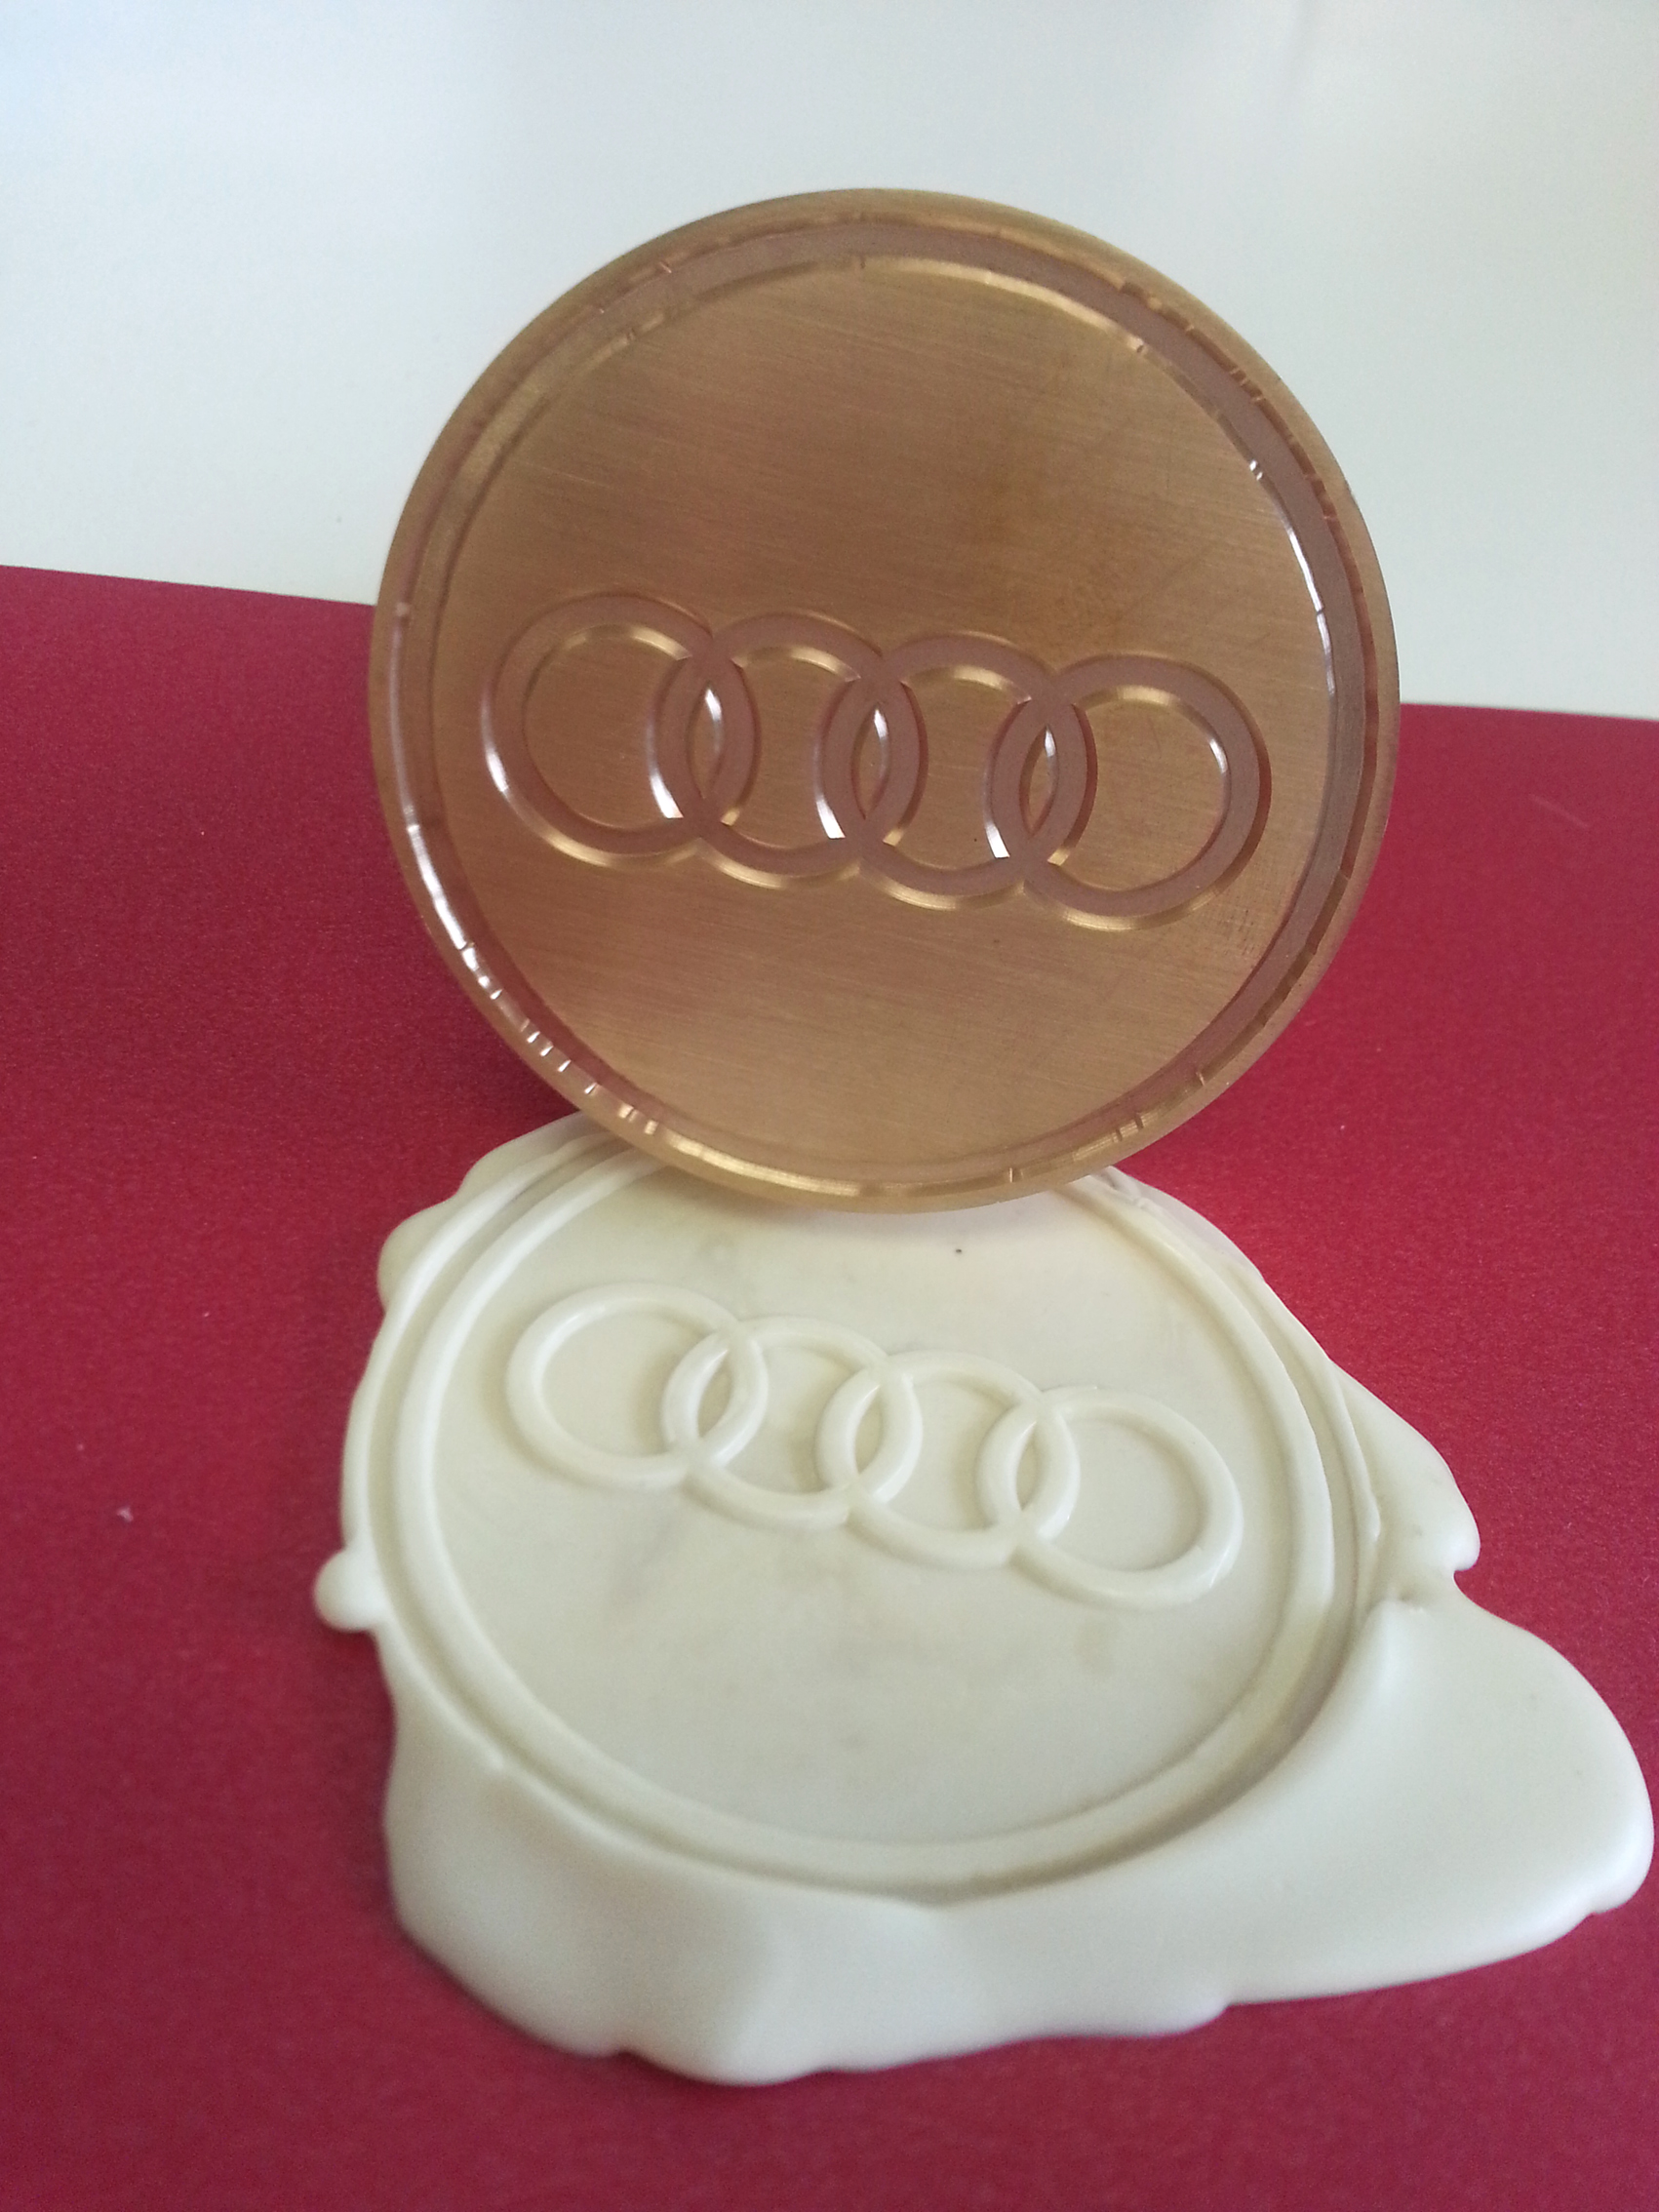 Audi wax seal stamp.jpg